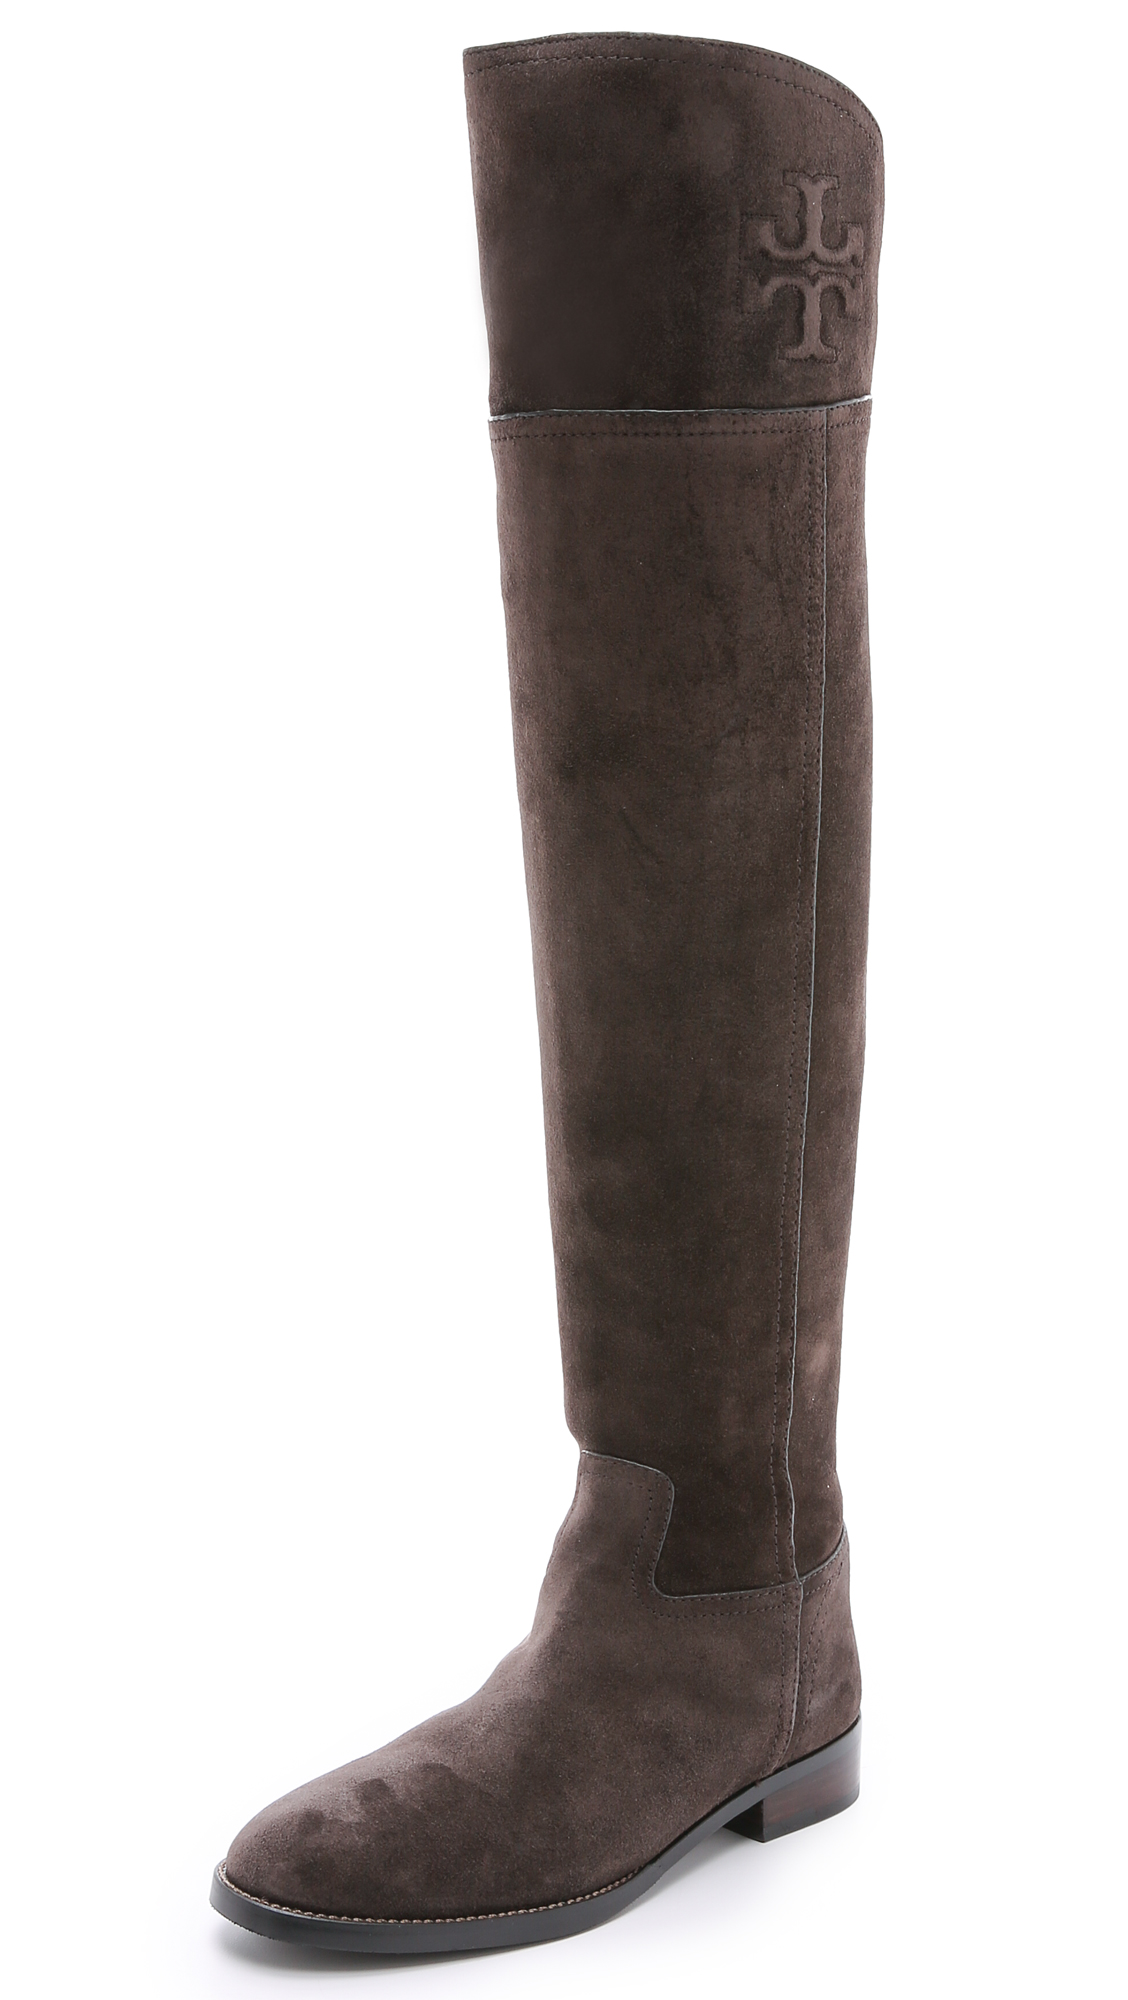 9afe7d39e9f7 Tory Burch Simone Suede Over the Knee Boots